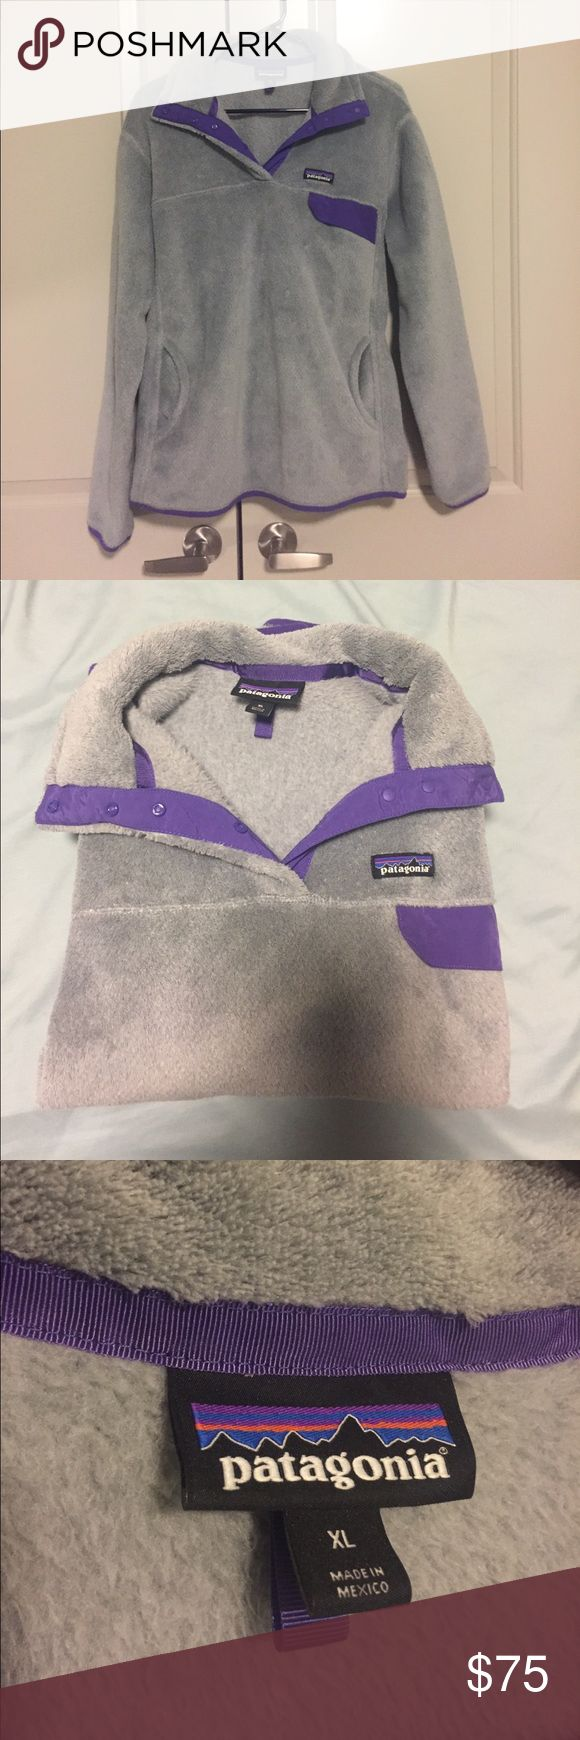 Patagonia Re Tool Fleece - Purple and Grey - XL Super cozy Patagonia fleece jacket for sale! If you like for coats to fit a little oversized, then this is perfect for you! This jacket is grey and purple in color, with no stains, rips, picks or holes anywhere on the jacket. Very warm and cozy - effect for cooler weather. EUC - well taken care of!  Let me know if you have any questions!   🚫 Pets  🚫 Smoking Patagonia Jackets & Coats